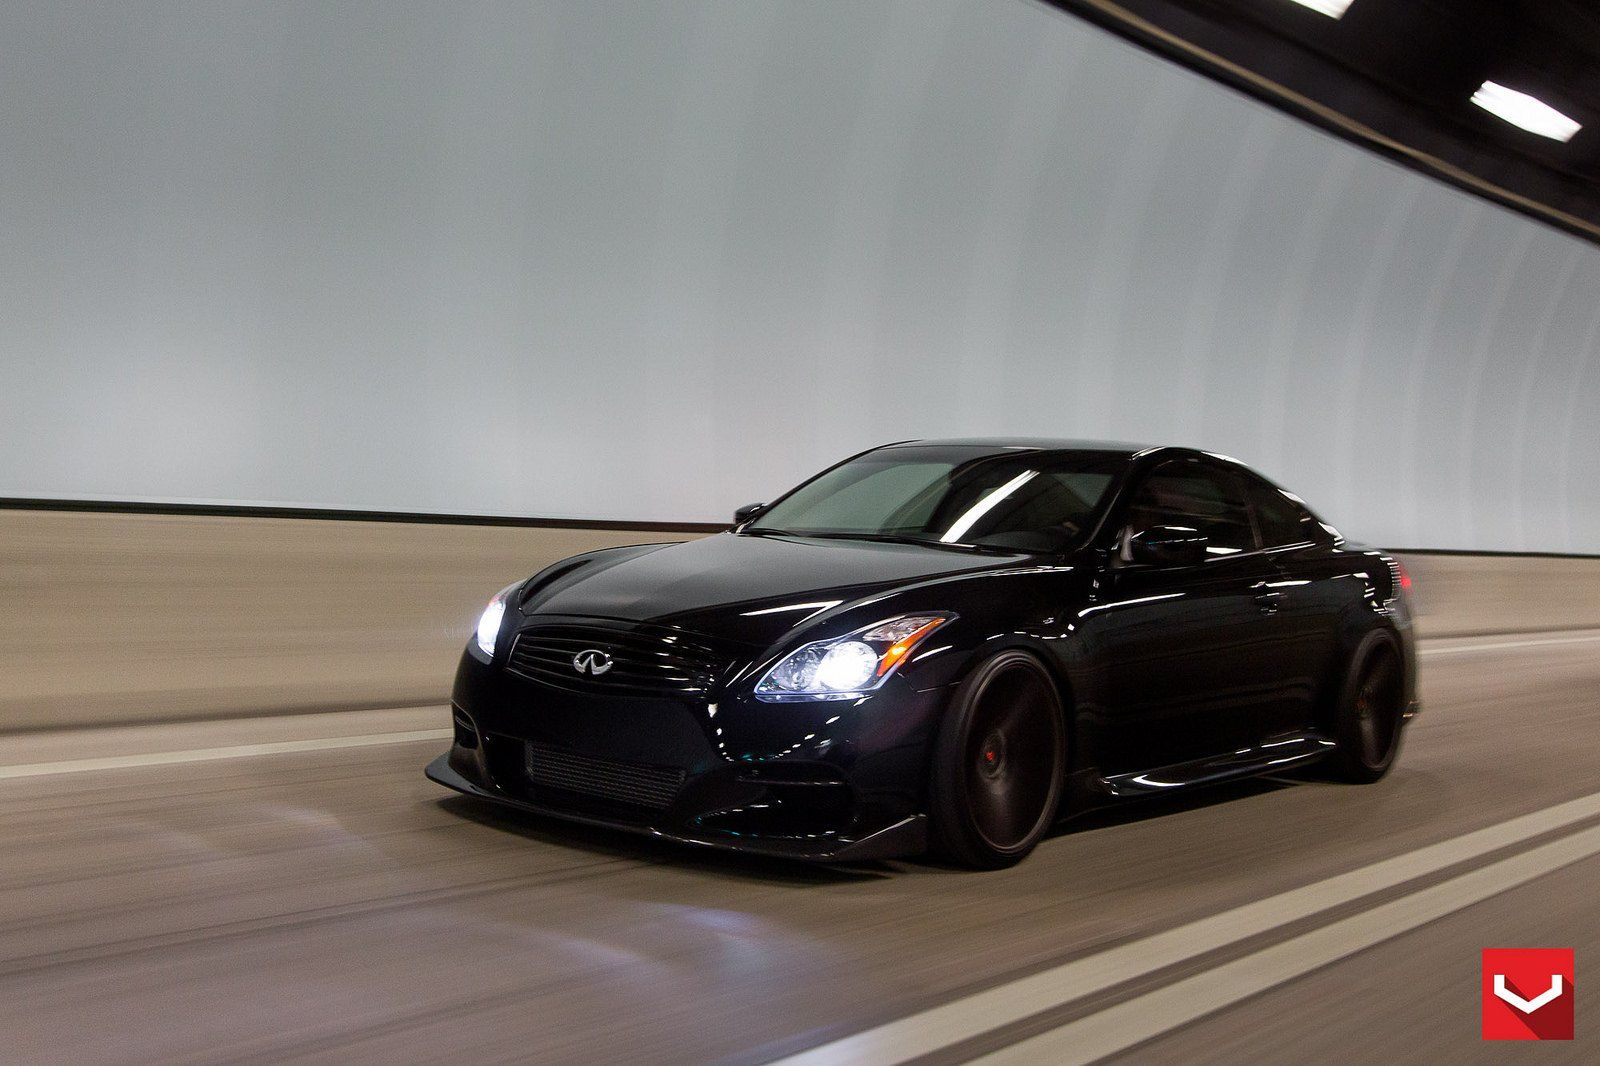 Vossen wheels infiniti g37s black tuning cars wallpaper background vossen wheels infiniti g37s black tuning cars wallpaper background vanachro Choice Image